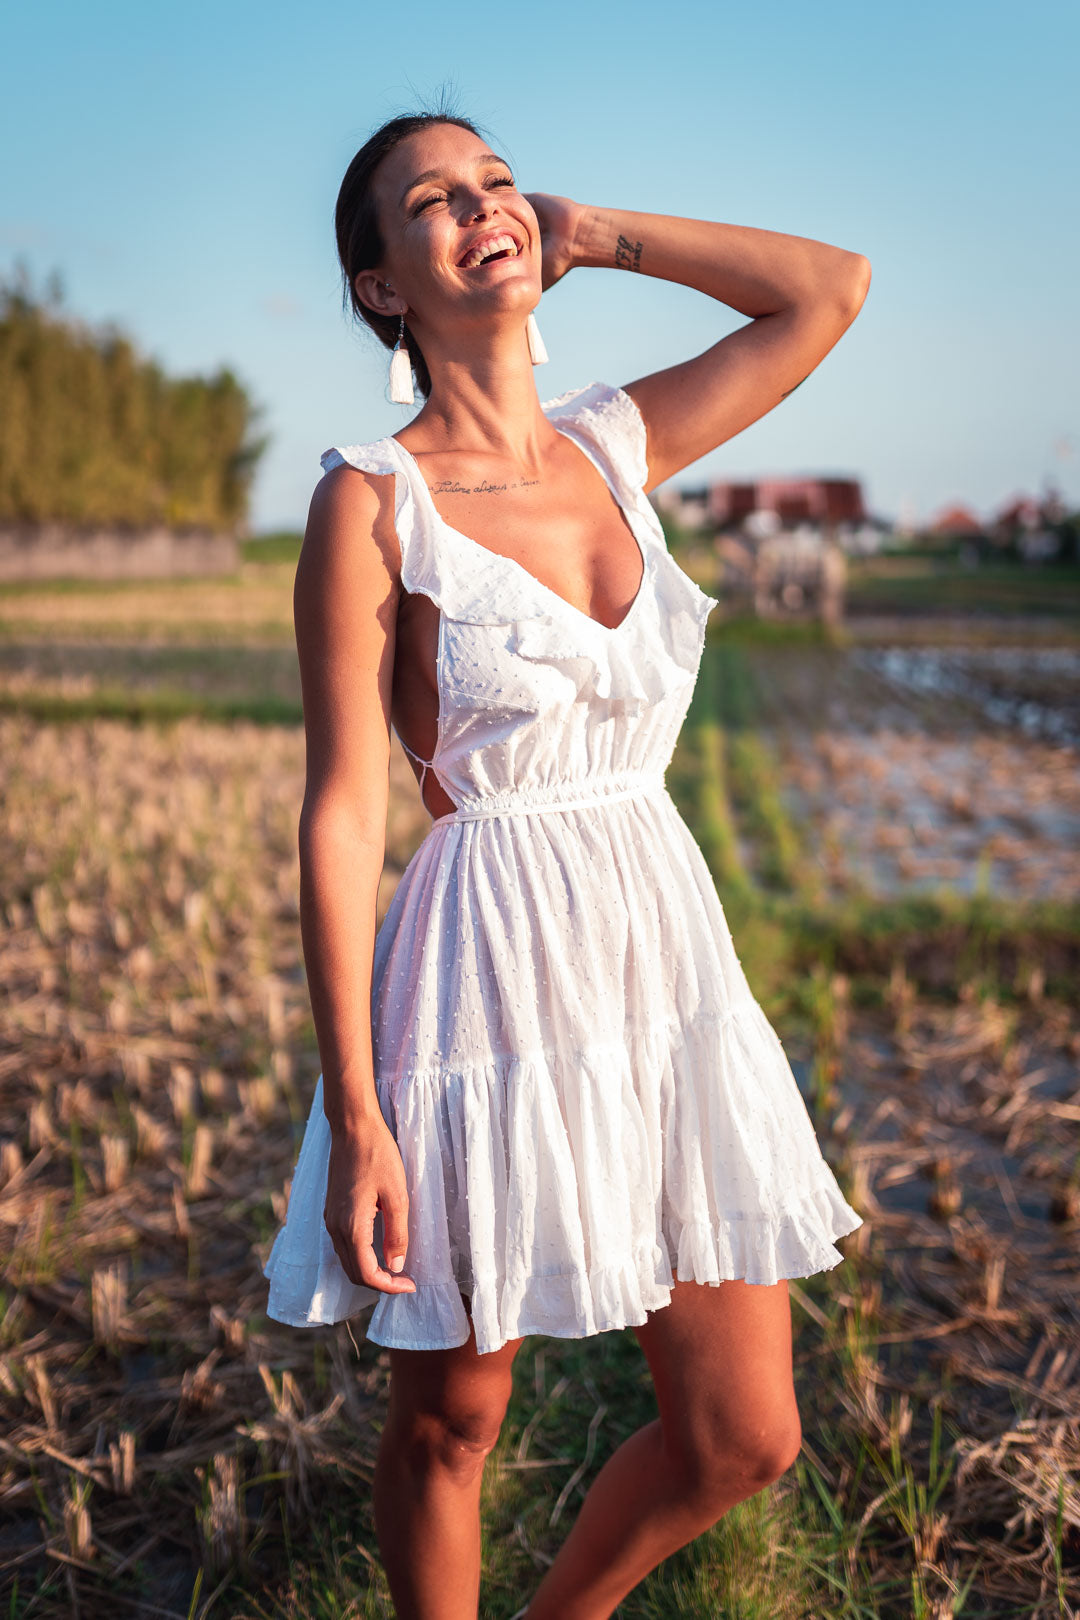 Female model with white dress at a rice field in Bali